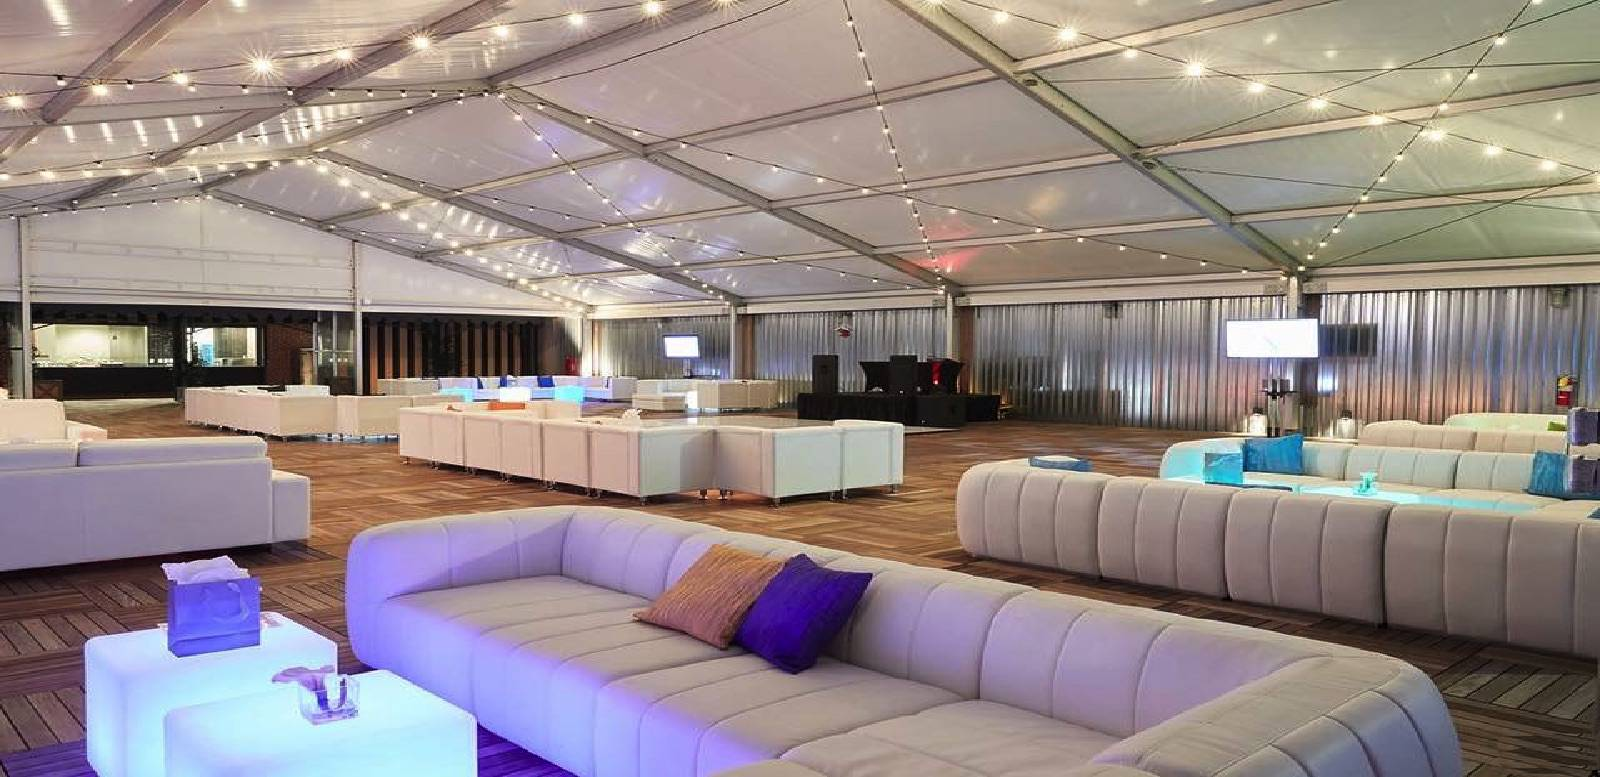 Luxury Lounge Lighting Event Furnishings And Rentals In Atlanta Ga